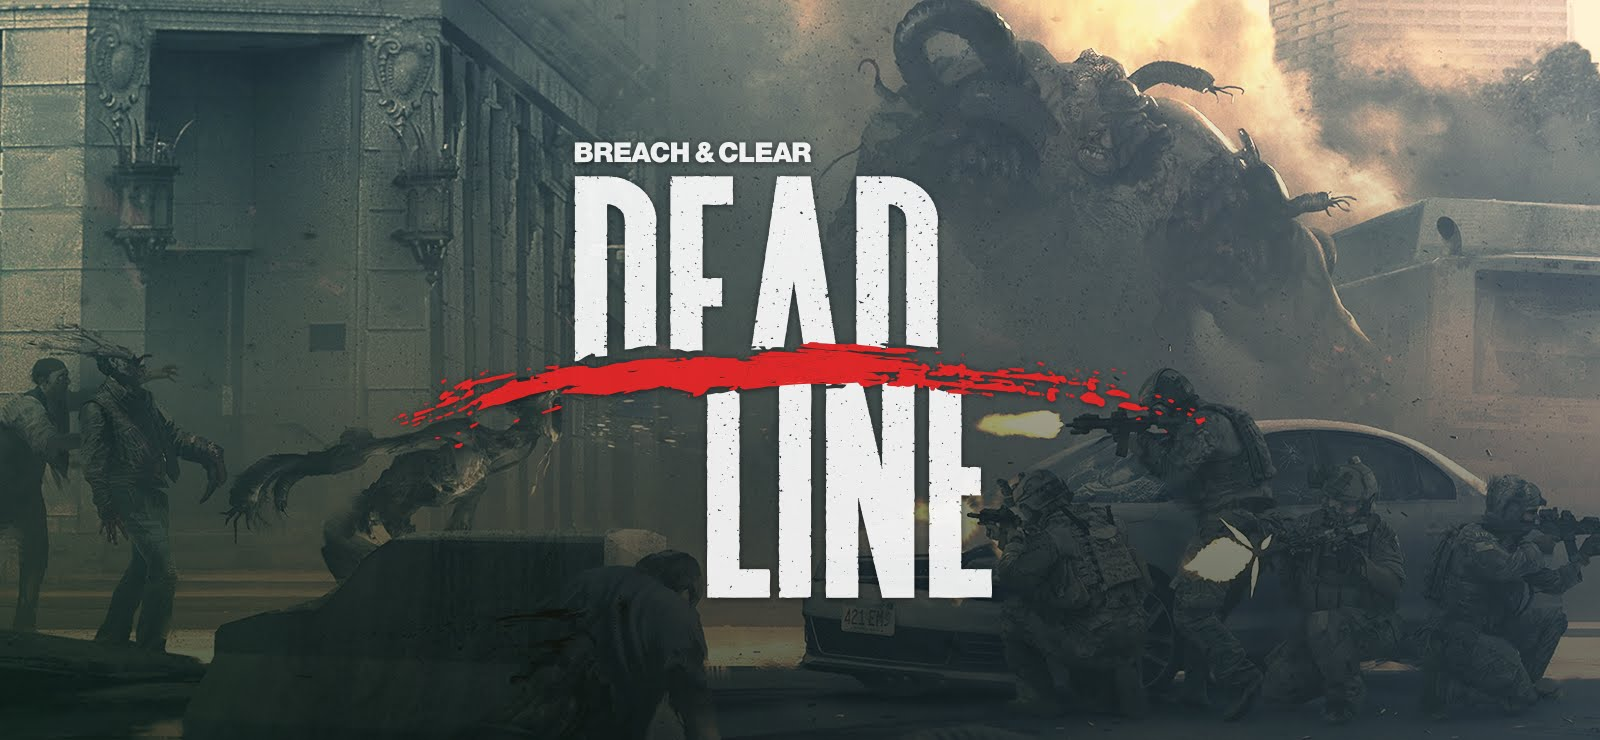 Breach & Clear: Deadline Pics, Video Game Collection